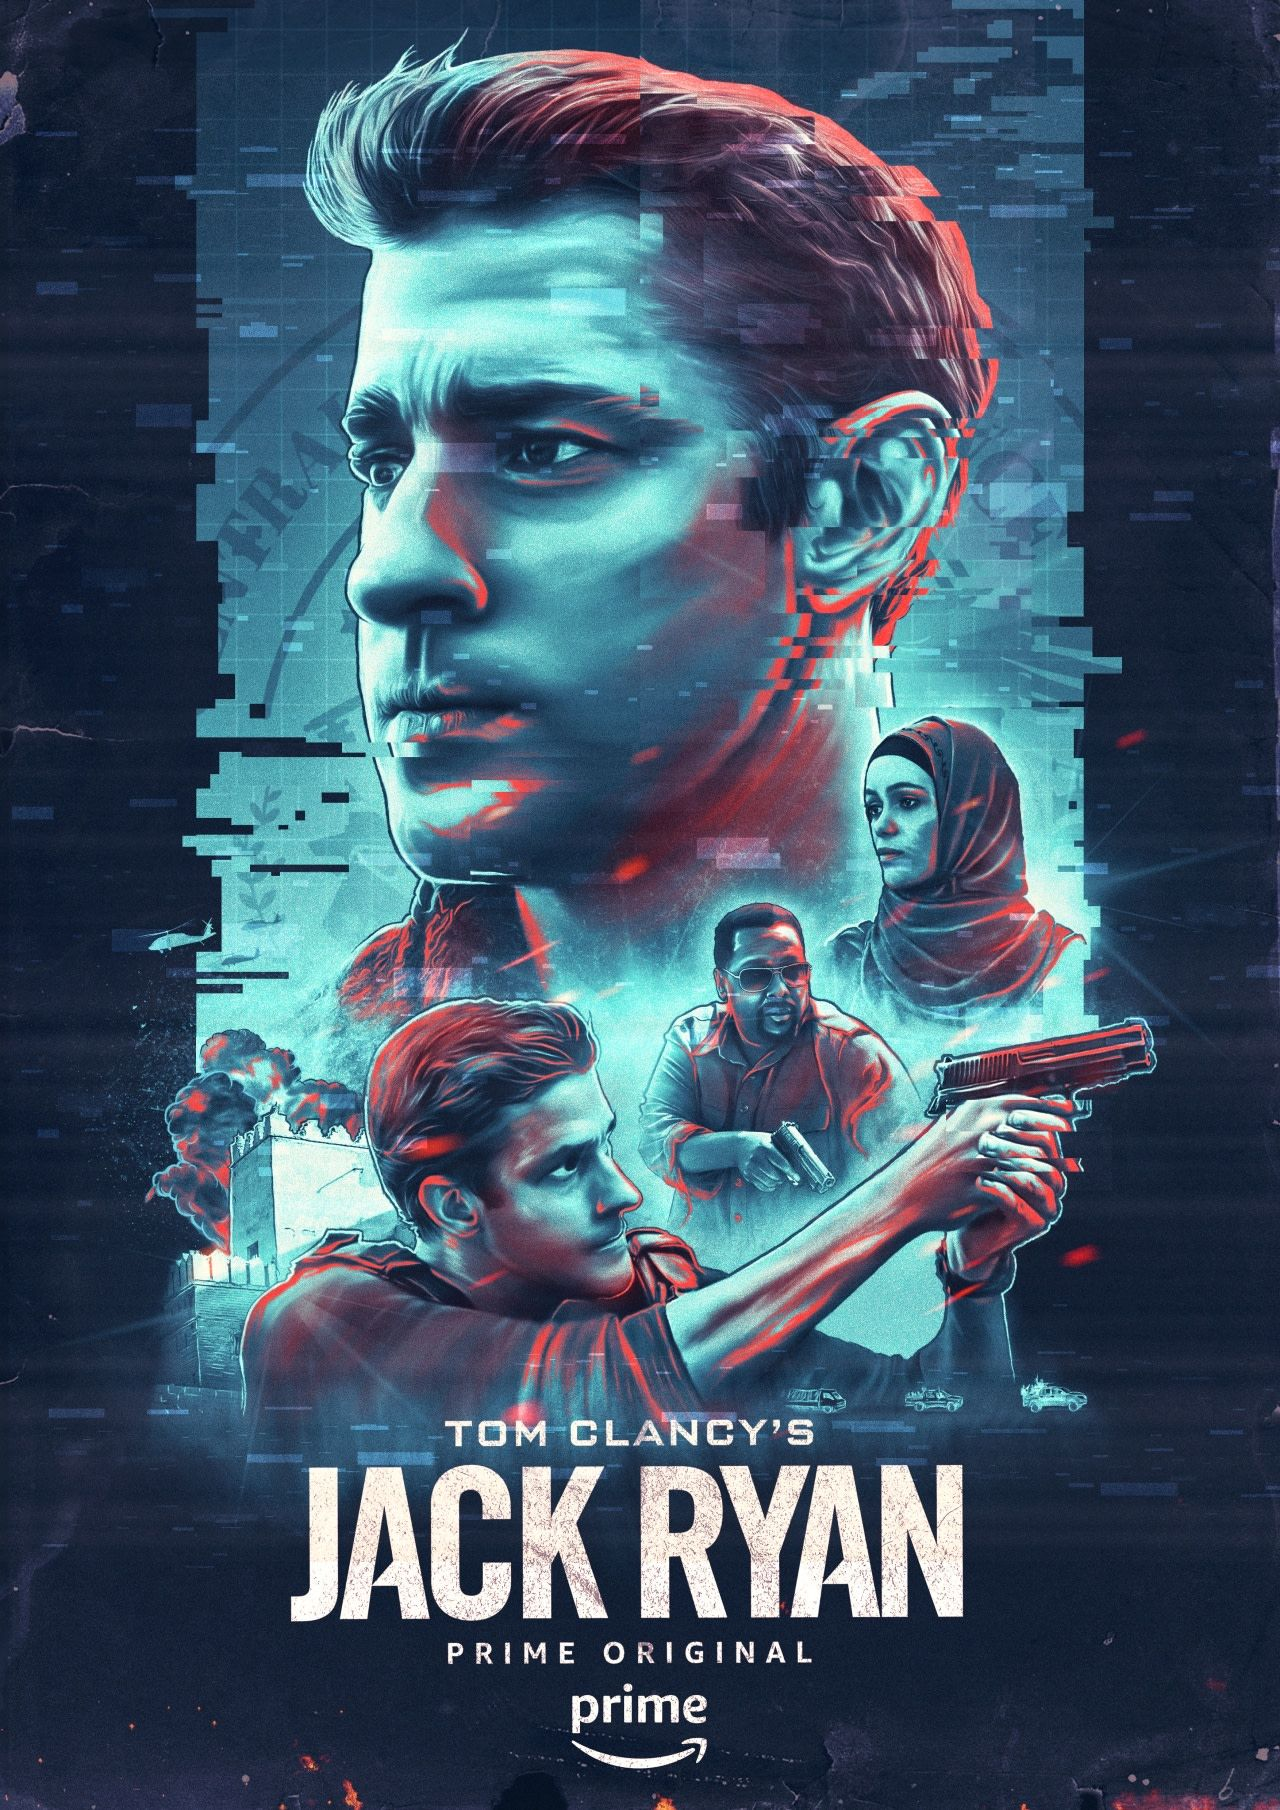 Create oneofakind artwork for jack ryan film poster